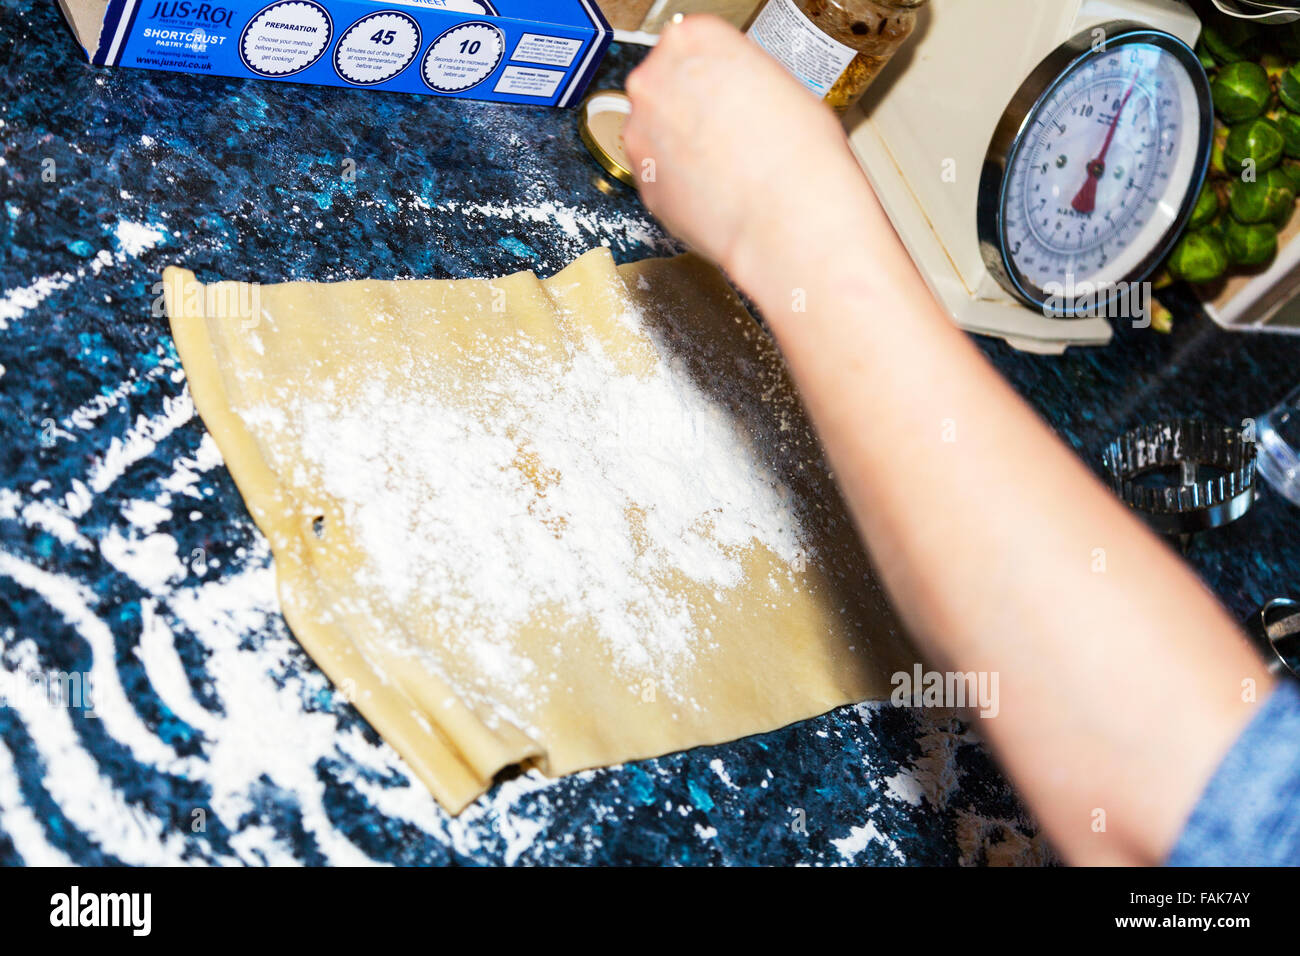 Pastry rolled out sheet ready for cutting flower flowering kitchen worktop cooking baking just roll in a box - Stock Image